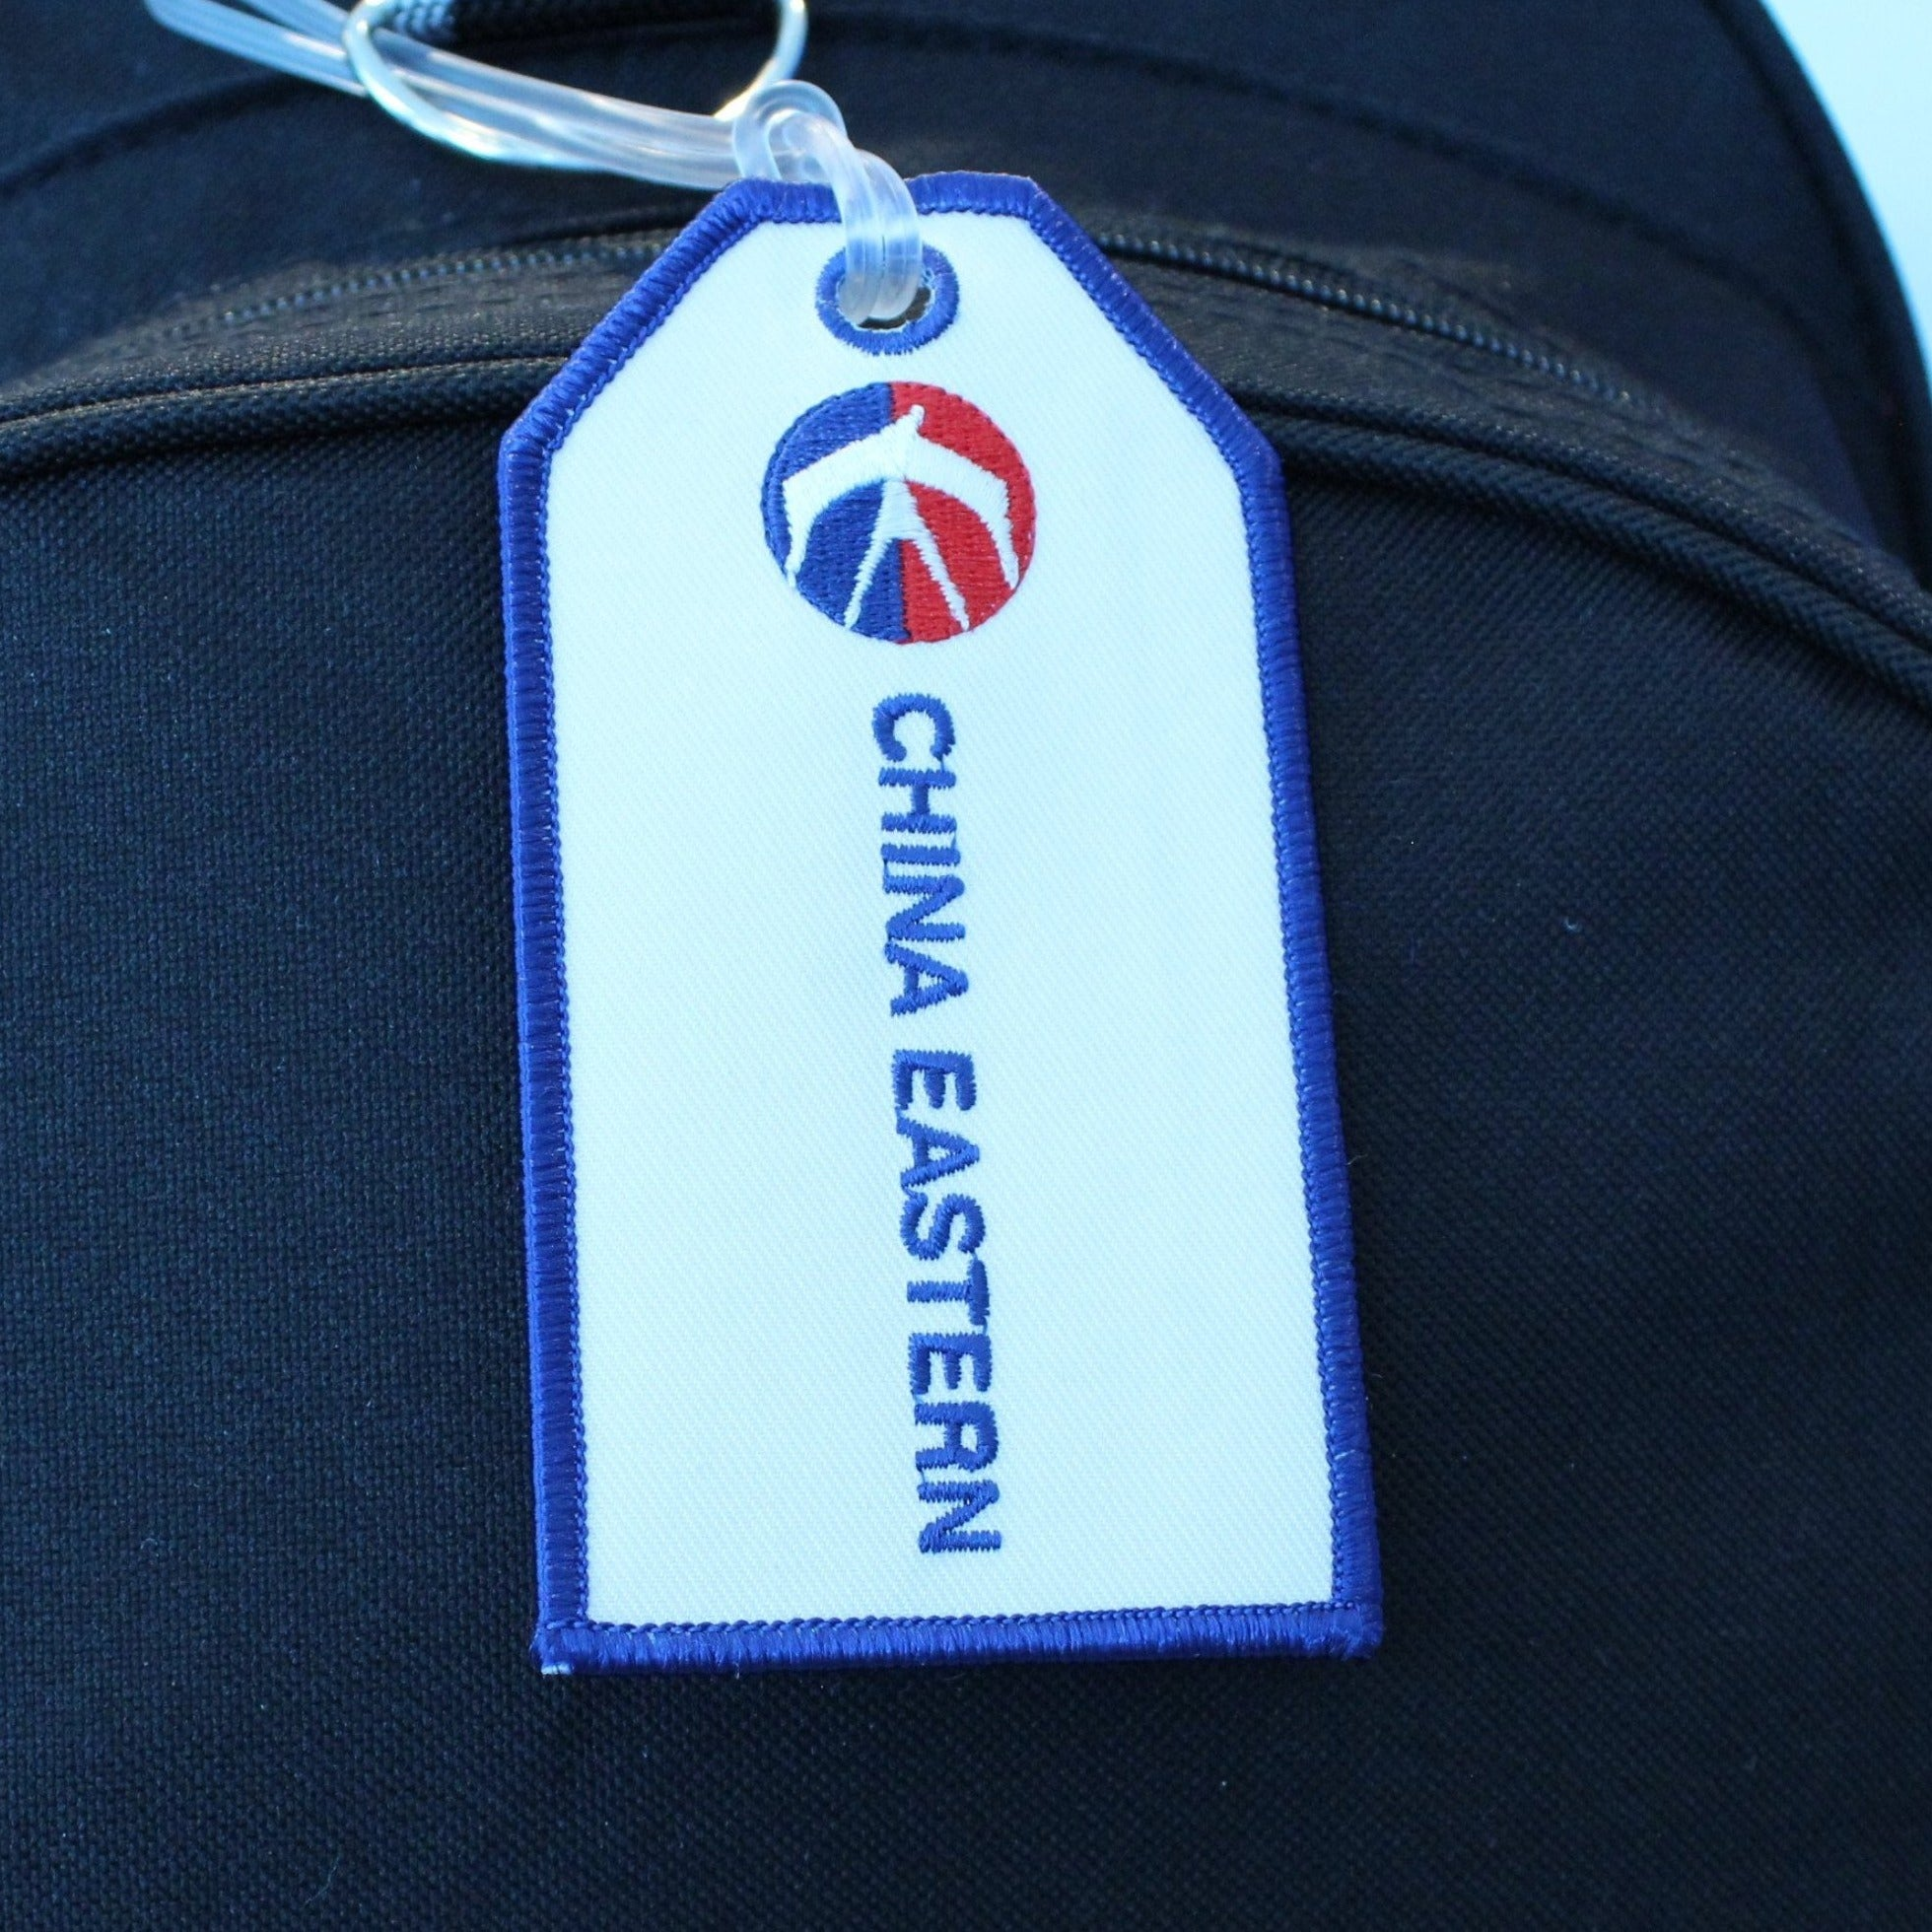 China Eastern - Bag Tag